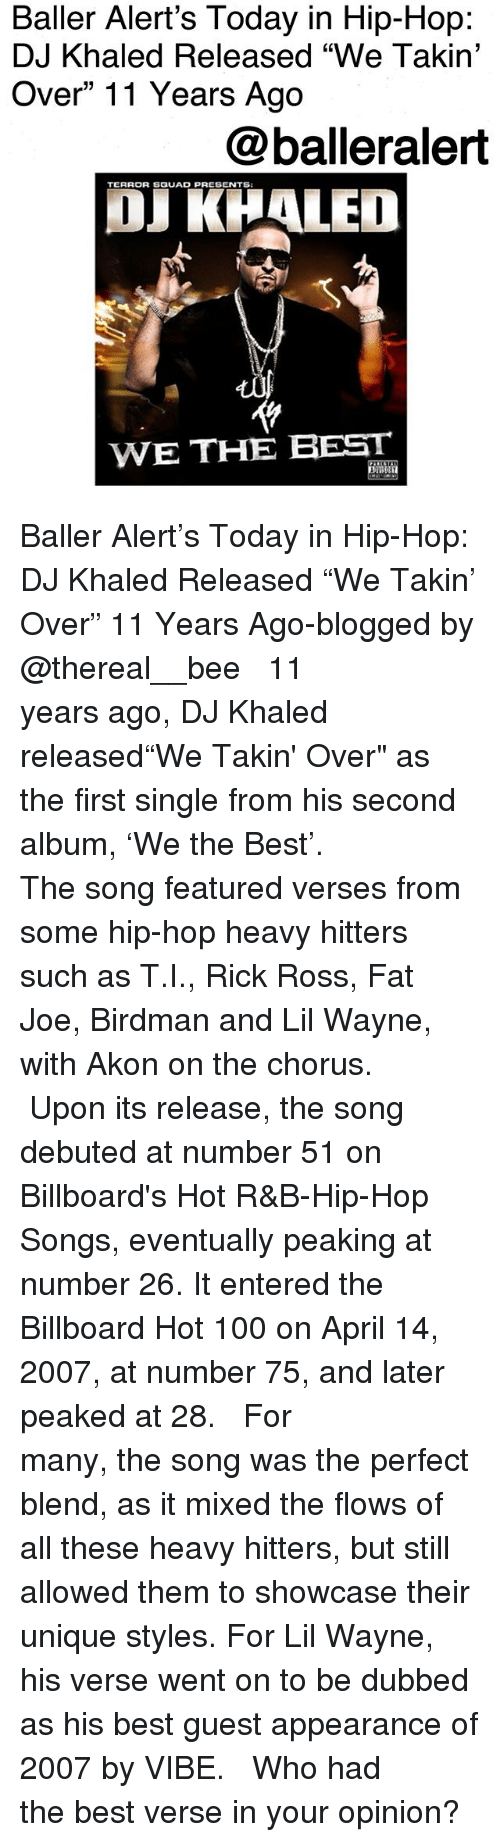 """Akon: Baller Alert's Today in Hip-Hop:  DJ Khaled Released """"We Takin'  Over"""" 11 Years Ago  @balleralert  TERROR SGUAD PRESENTS  OJ KHALED  WE THE BEST Baller Alert's Today in Hip-Hop: DJ Khaled Released """"We Takin' Over"""" 11 Years Ago-blogged by @thereal__bee ⠀⠀⠀⠀⠀⠀⠀⠀⠀ ⠀⠀ 11 years ago, DJ Khaled released""""We Takin' Over"""" as the first single from his second album, 'We the Best'. ⠀⠀⠀⠀⠀⠀⠀⠀⠀ ⠀⠀ The song featured verses from some hip-hop heavy hitters such as T.I., Rick Ross, Fat Joe, Birdman and Lil Wayne, with Akon on the chorus. ⠀⠀⠀⠀⠀⠀⠀⠀⠀ ⠀⠀ Upon its release, the song debuted at number 51 on Billboard's Hot R&B-Hip-Hop Songs, eventually peaking at number 26. It entered the Billboard Hot 100 on April 14, 2007, at number 75, and later peaked at 28. ⠀⠀⠀⠀⠀⠀⠀⠀⠀ ⠀⠀ For many, the song was the perfect blend, as it mixed the flows of all these heavy hitters, but still allowed them to showcase their unique styles. For Lil Wayne, his verse went on to be dubbed as his best guest appearance of 2007 by VIBE. ⠀⠀⠀⠀⠀⠀⠀⠀⠀ ⠀⠀ Who had the best verse in your opinion?"""